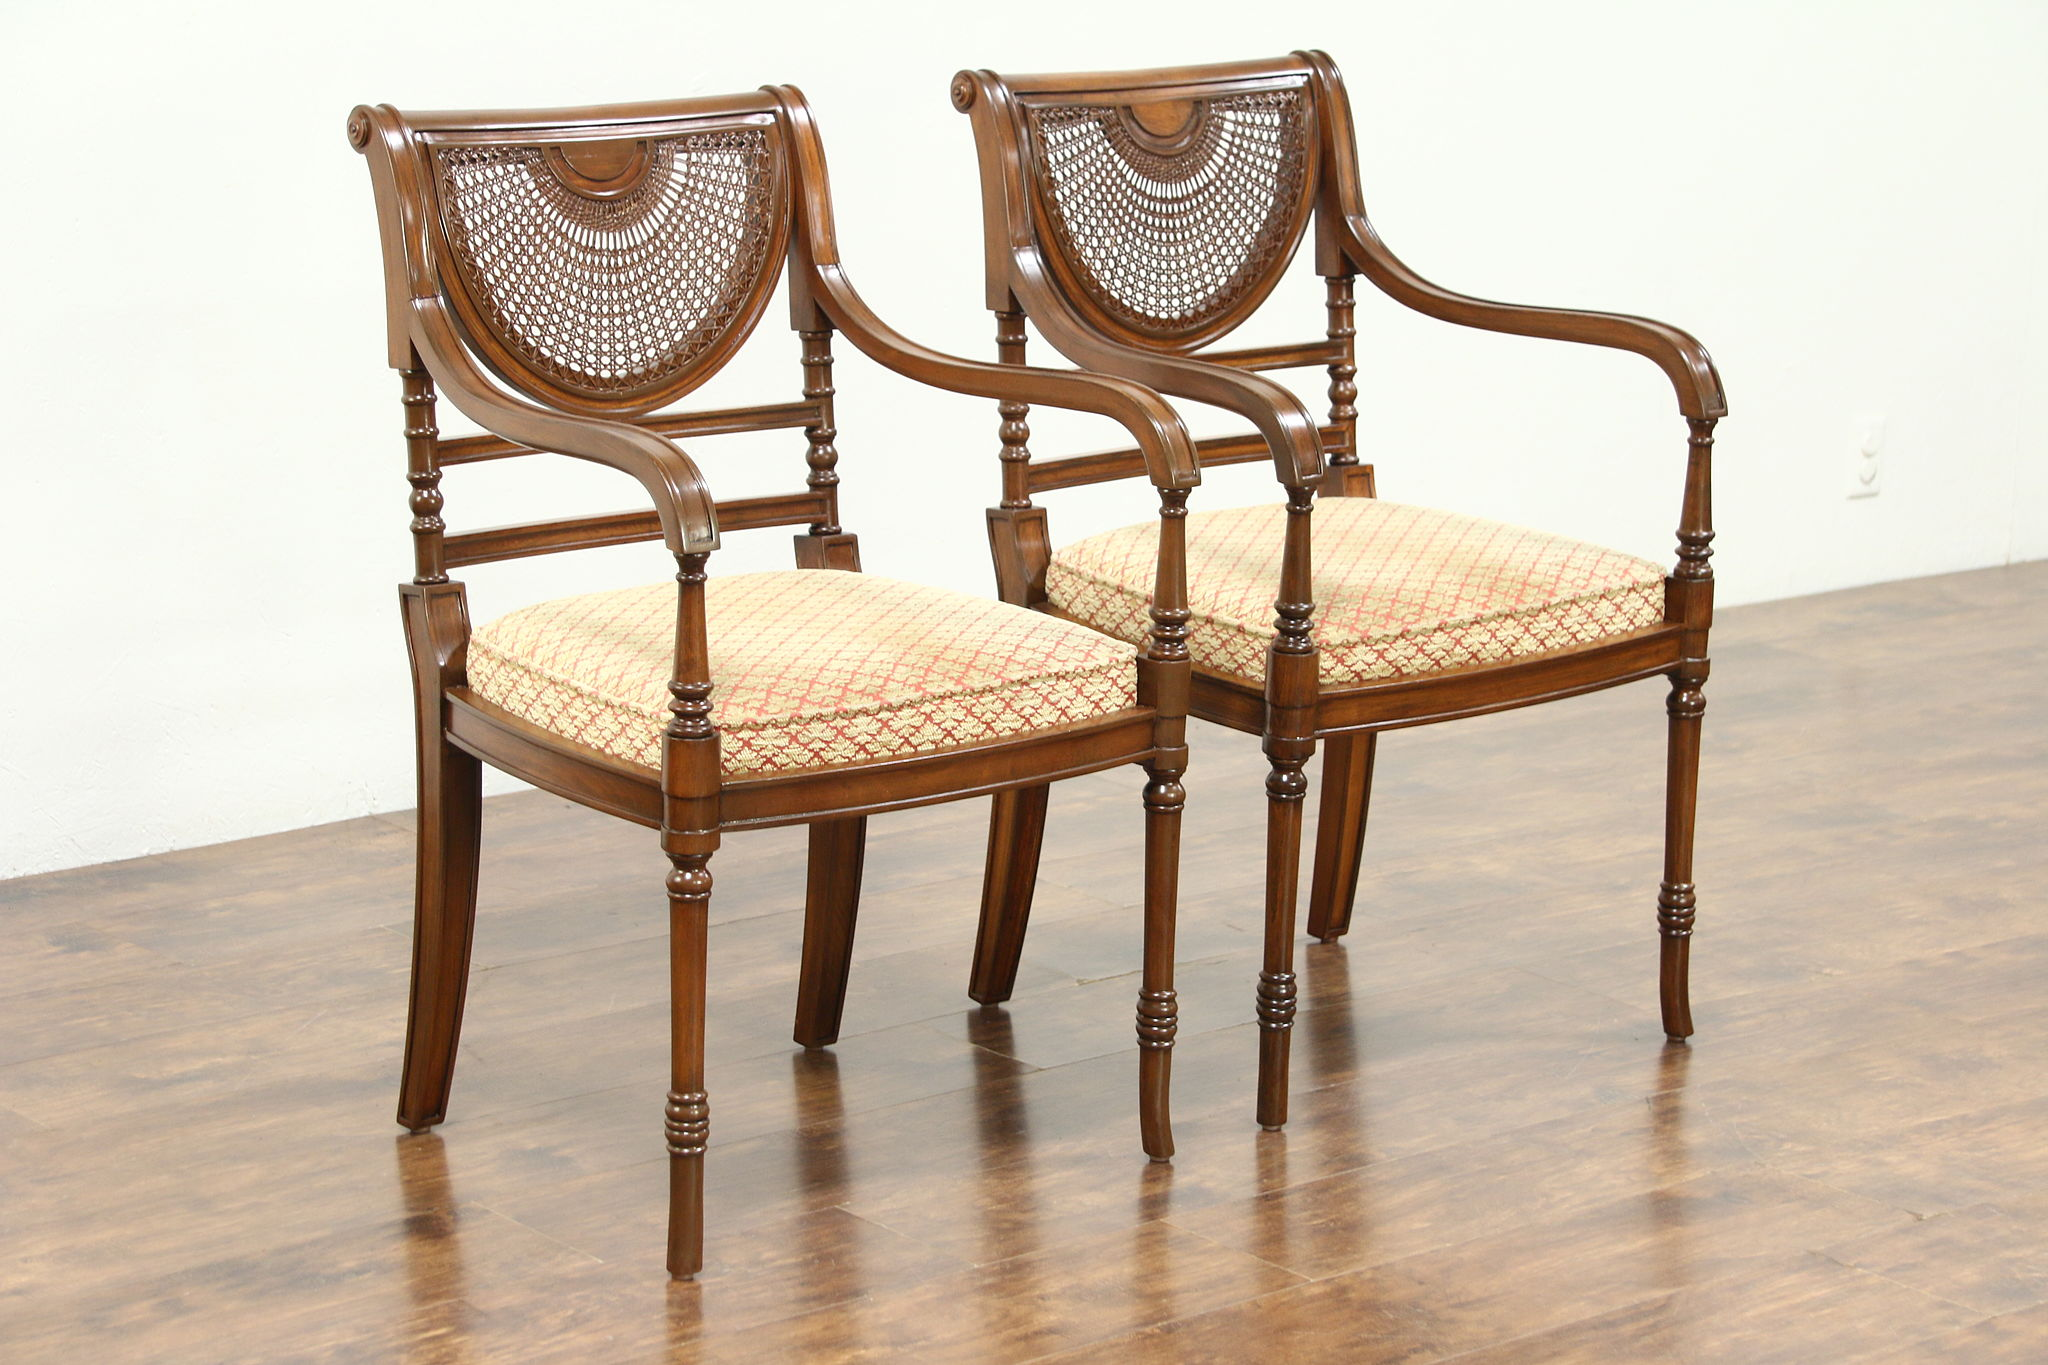 Pair Of Regency Style Vintage Carved Mahogany Chairs Regency Style Furniture S50